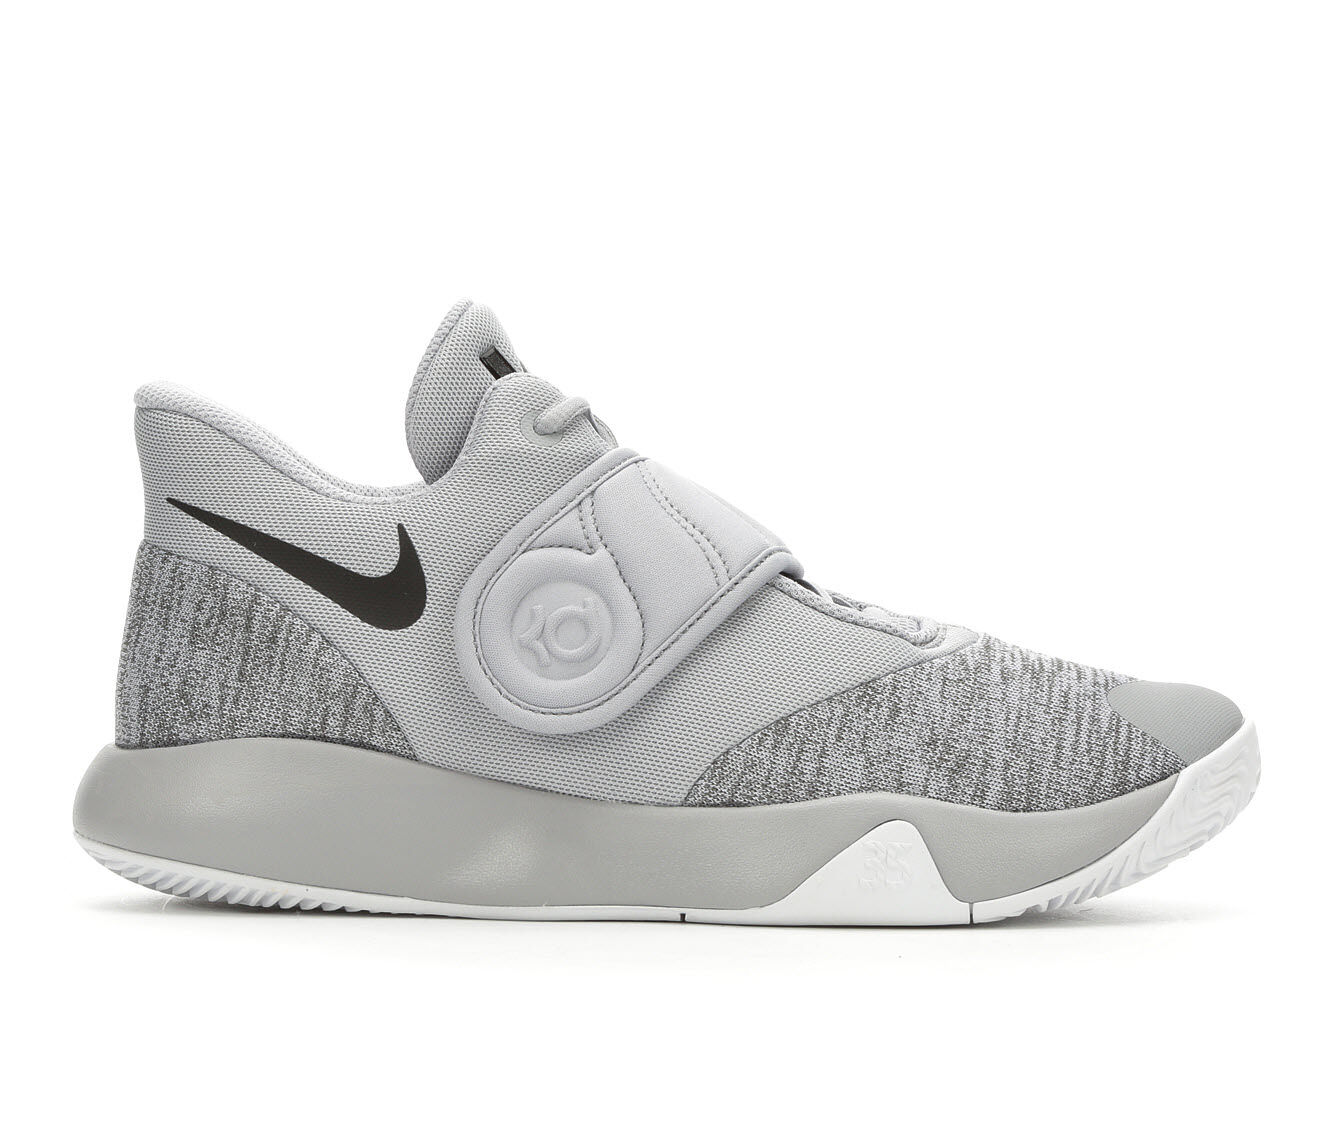 Men's Nike KD Trey 5 VI High Top Basketball Shoes Gry/Blk/Wht